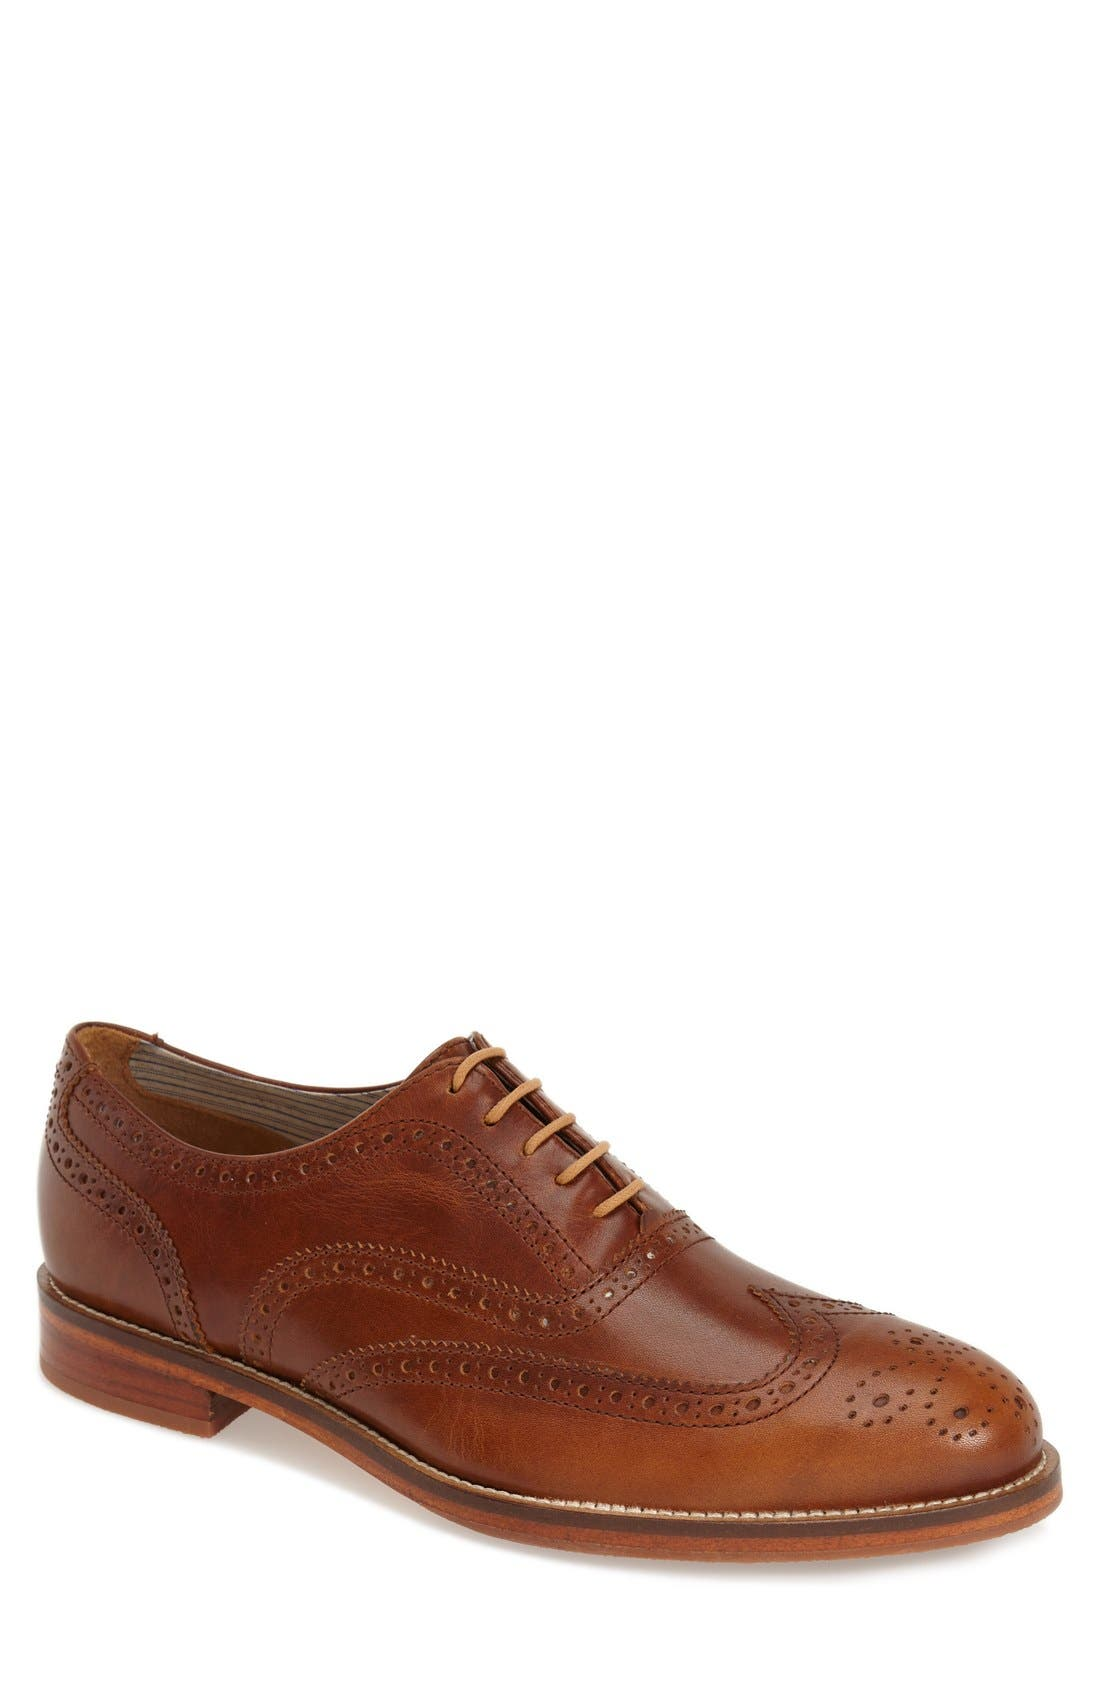 Charlie Plus Wingtip Oxford,                             Main thumbnail 1, color,                             BRASS LEATHER